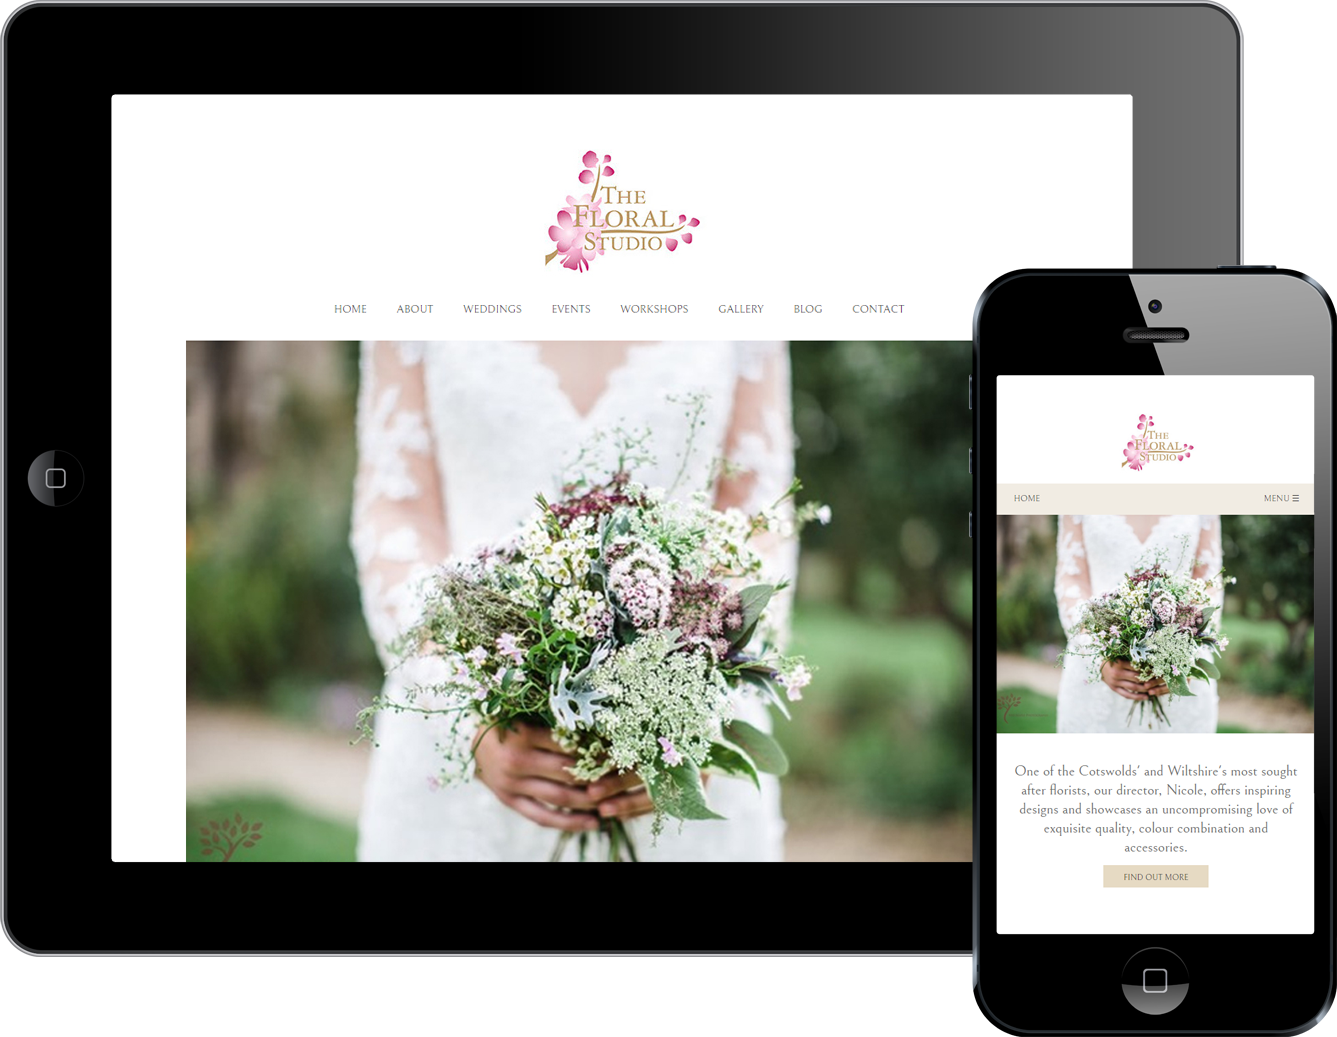 Responsive web design for The Floral Studio